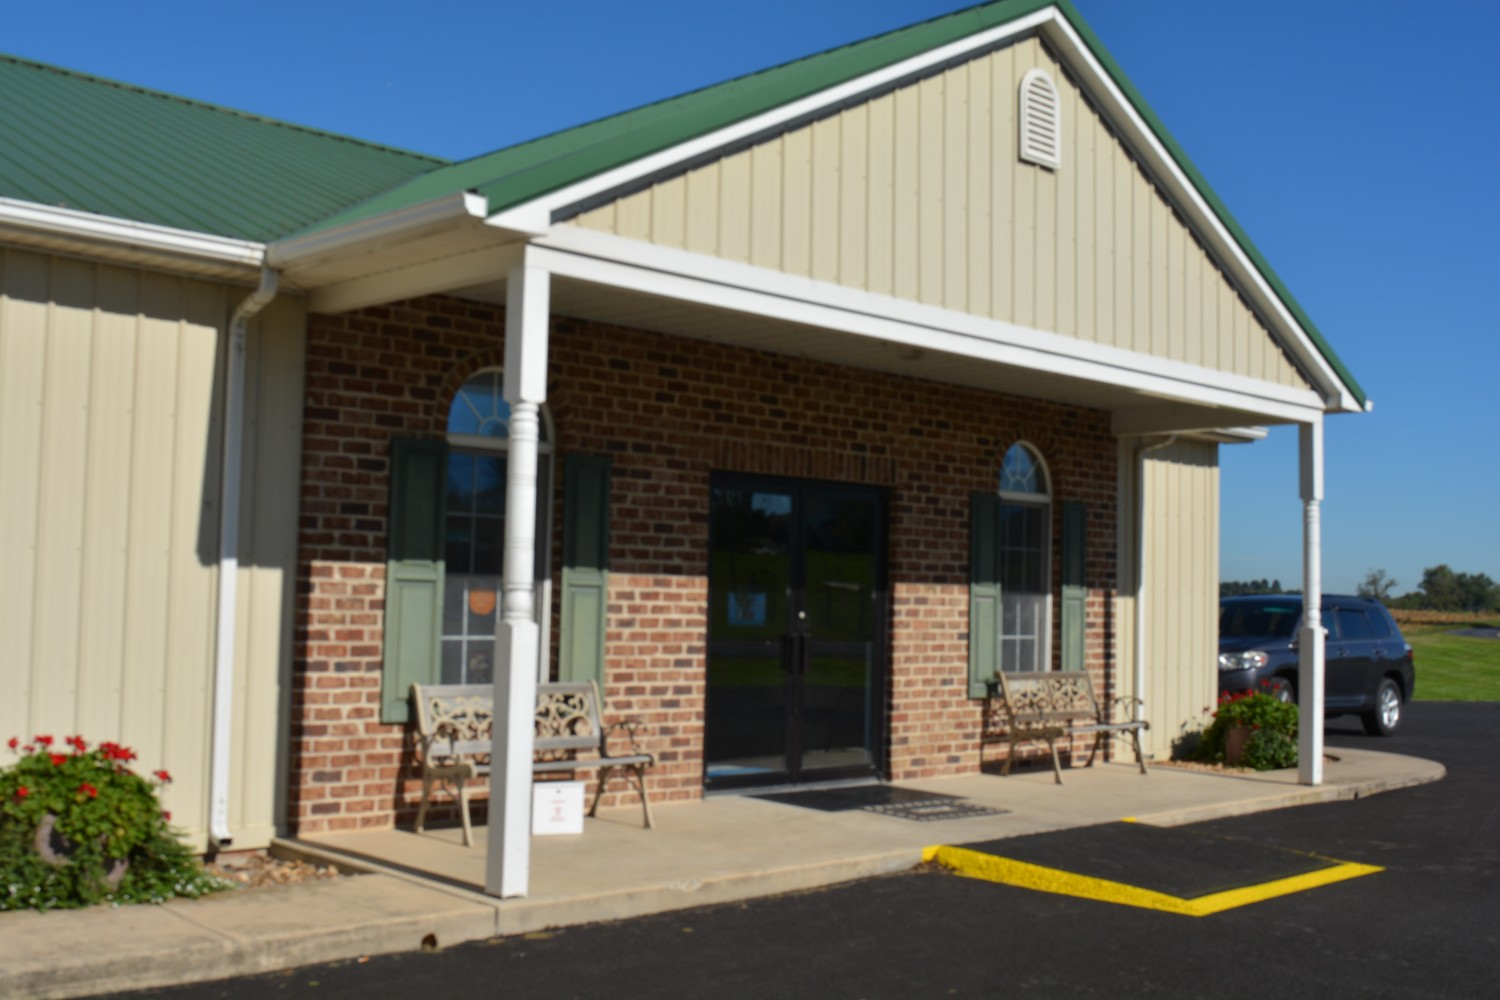 Dayton Animal Clinic - 1738 Silver Lake Road - Dayton, VA